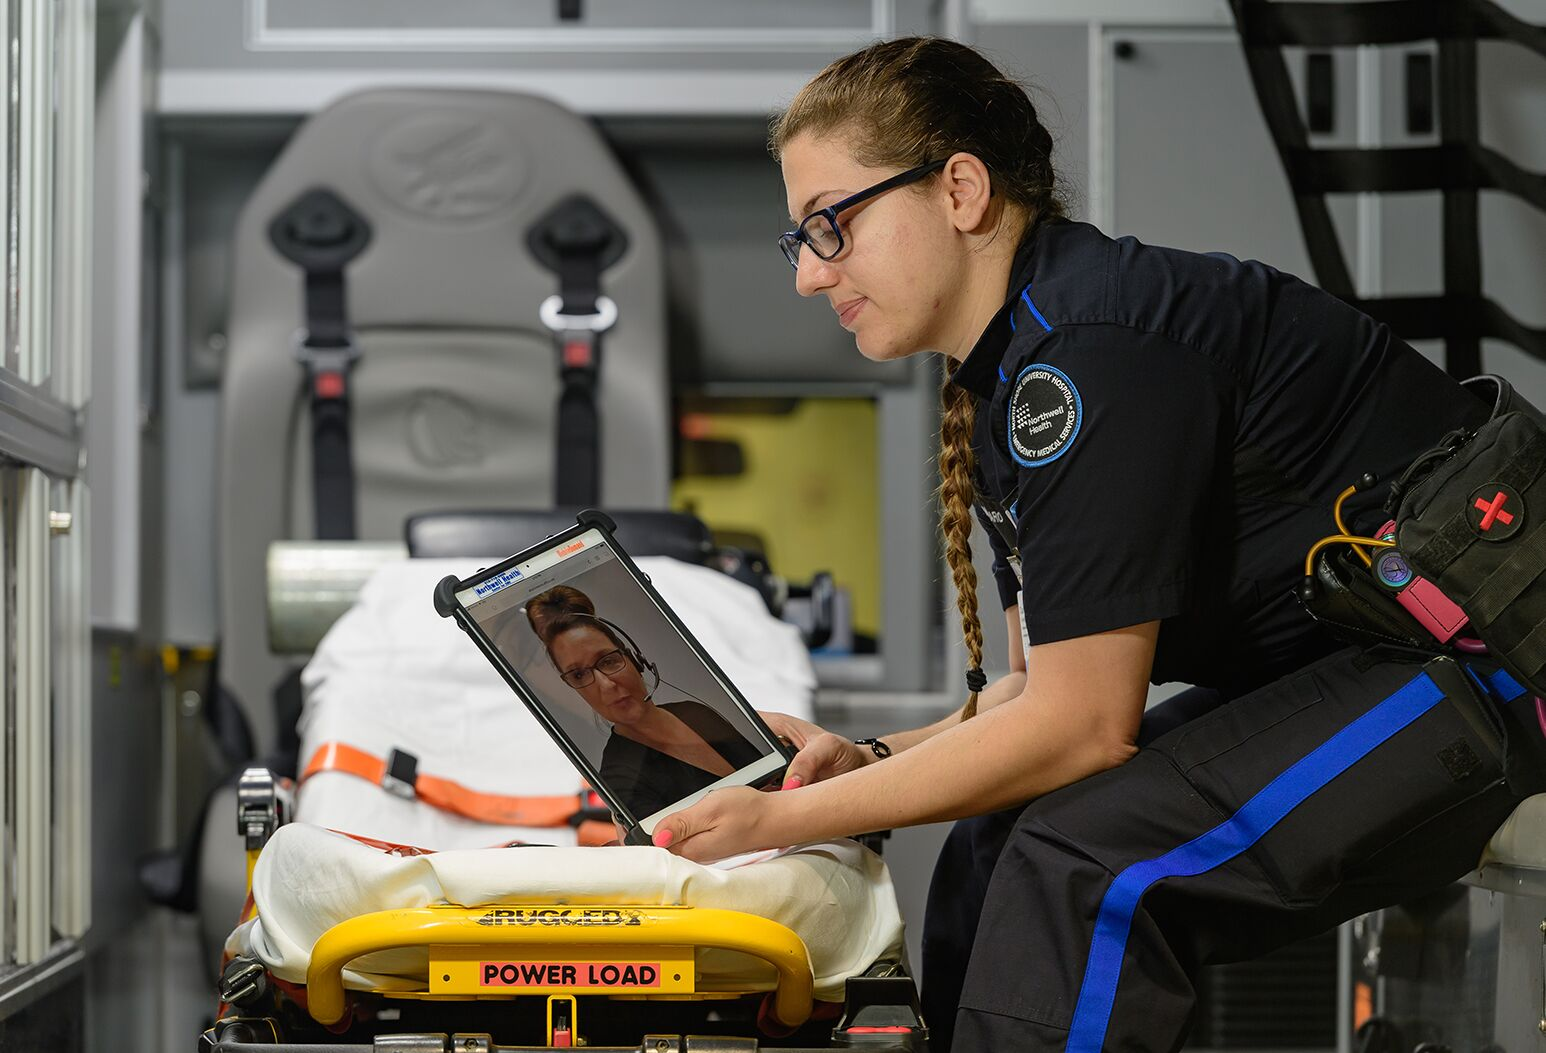 Northwell Health Paramedic Danielle Conigliaro calls up a LanguageLine translator via an app on an iPad.